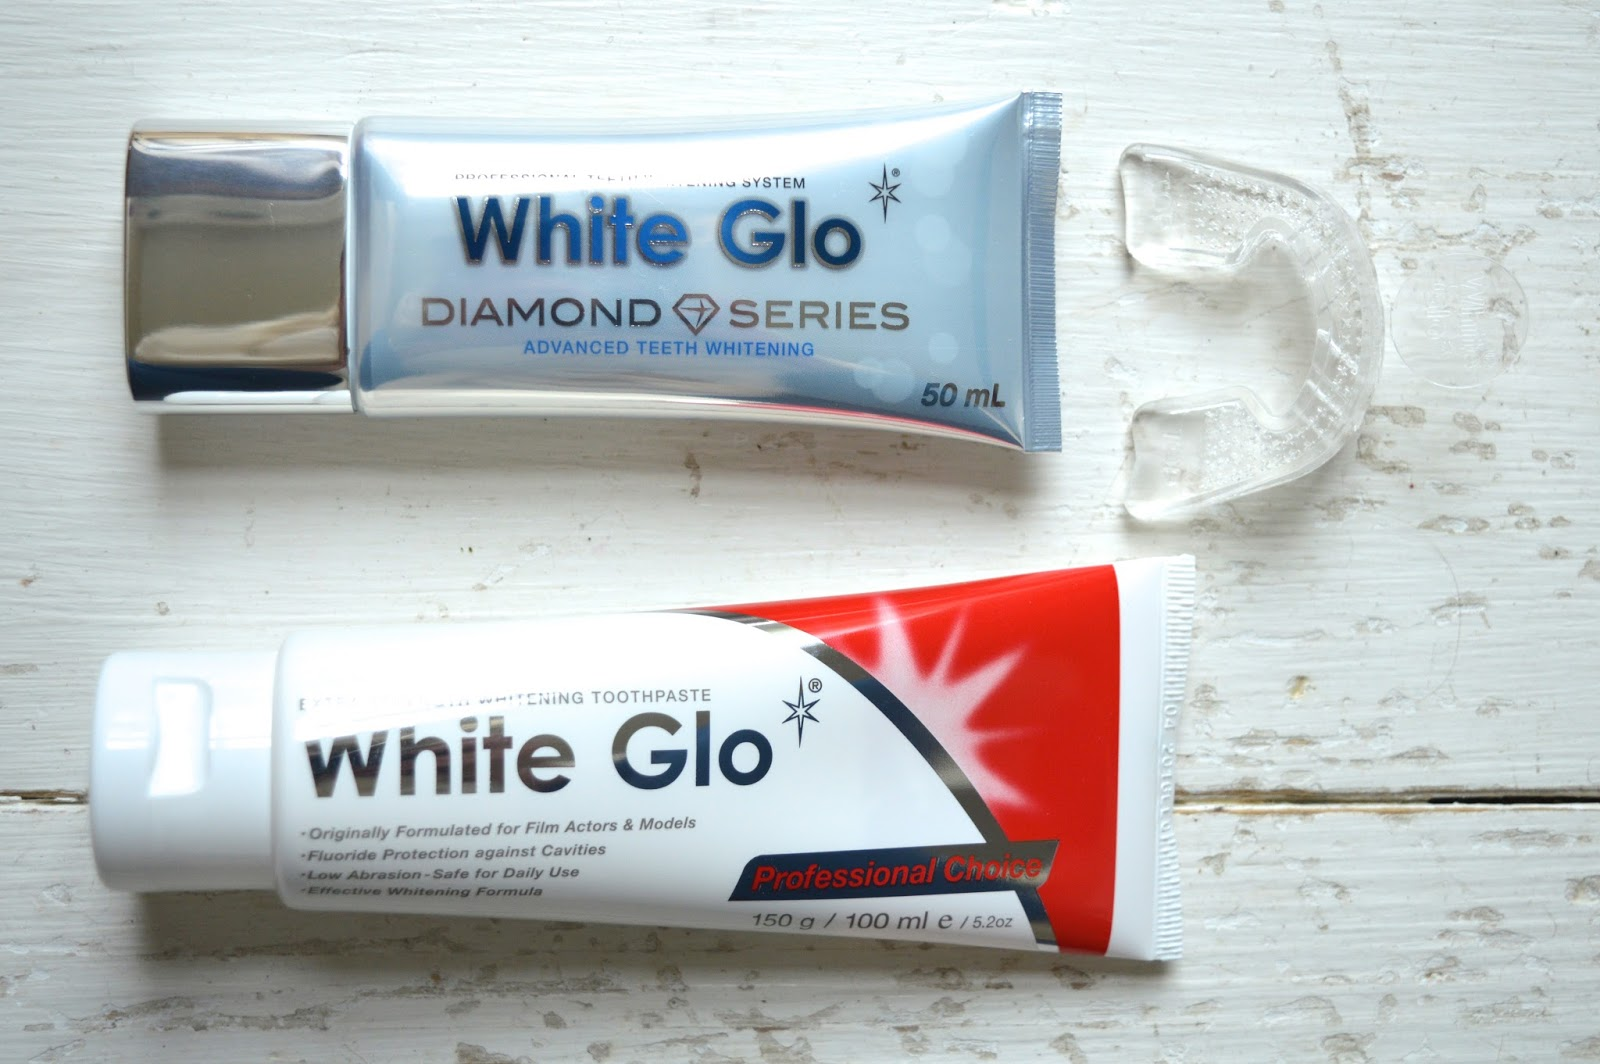 White Glo Diamond Series Teeth Whitening System Review, beauty bloggers, UK beauty blog, Dalry Rose Blog